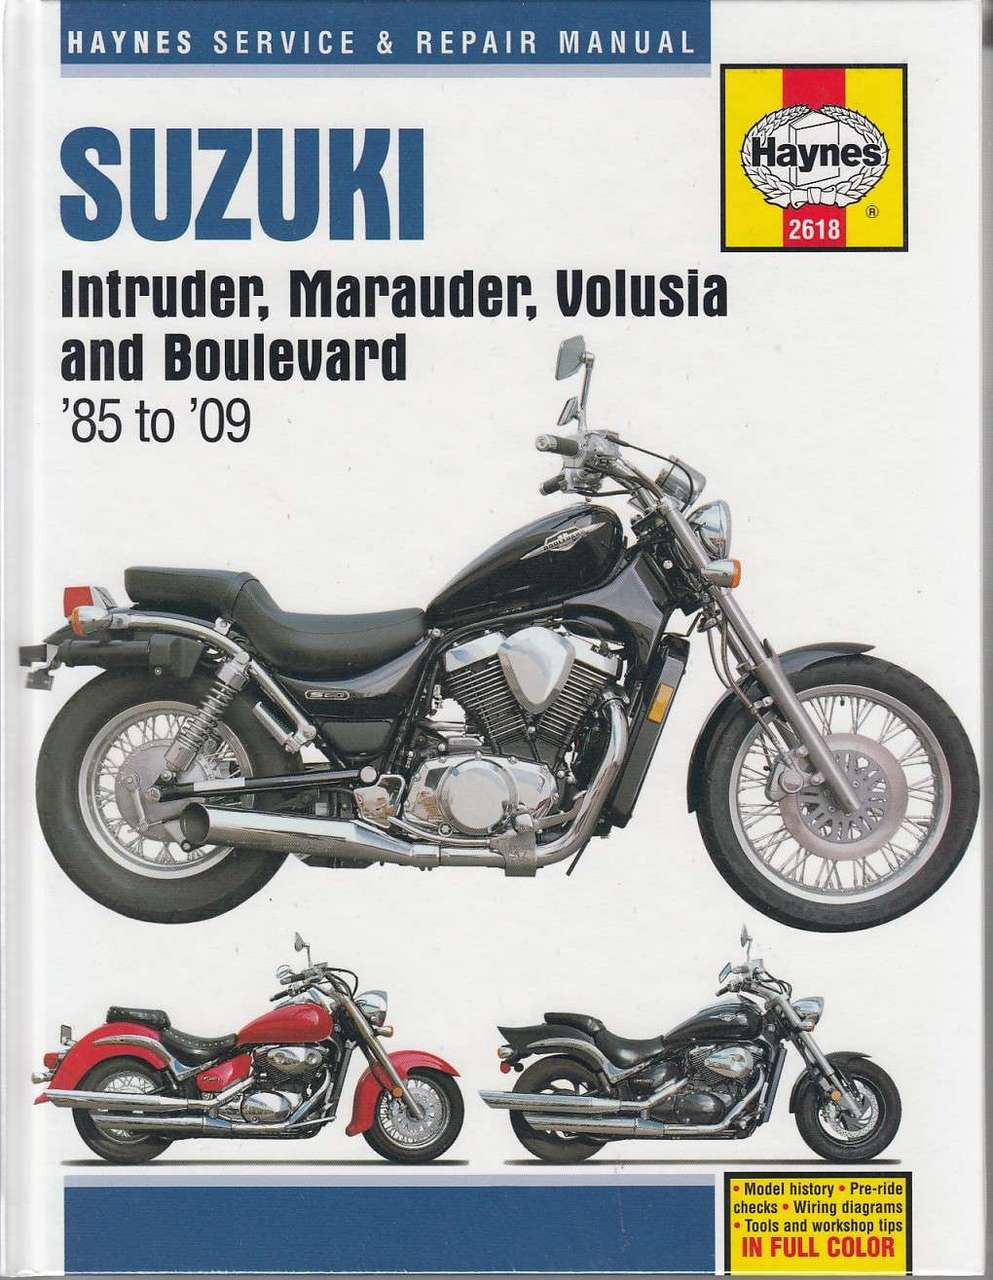 medium resolution of suzuki intruder marauder volusia and boulevard 1985 2009 workshop manual